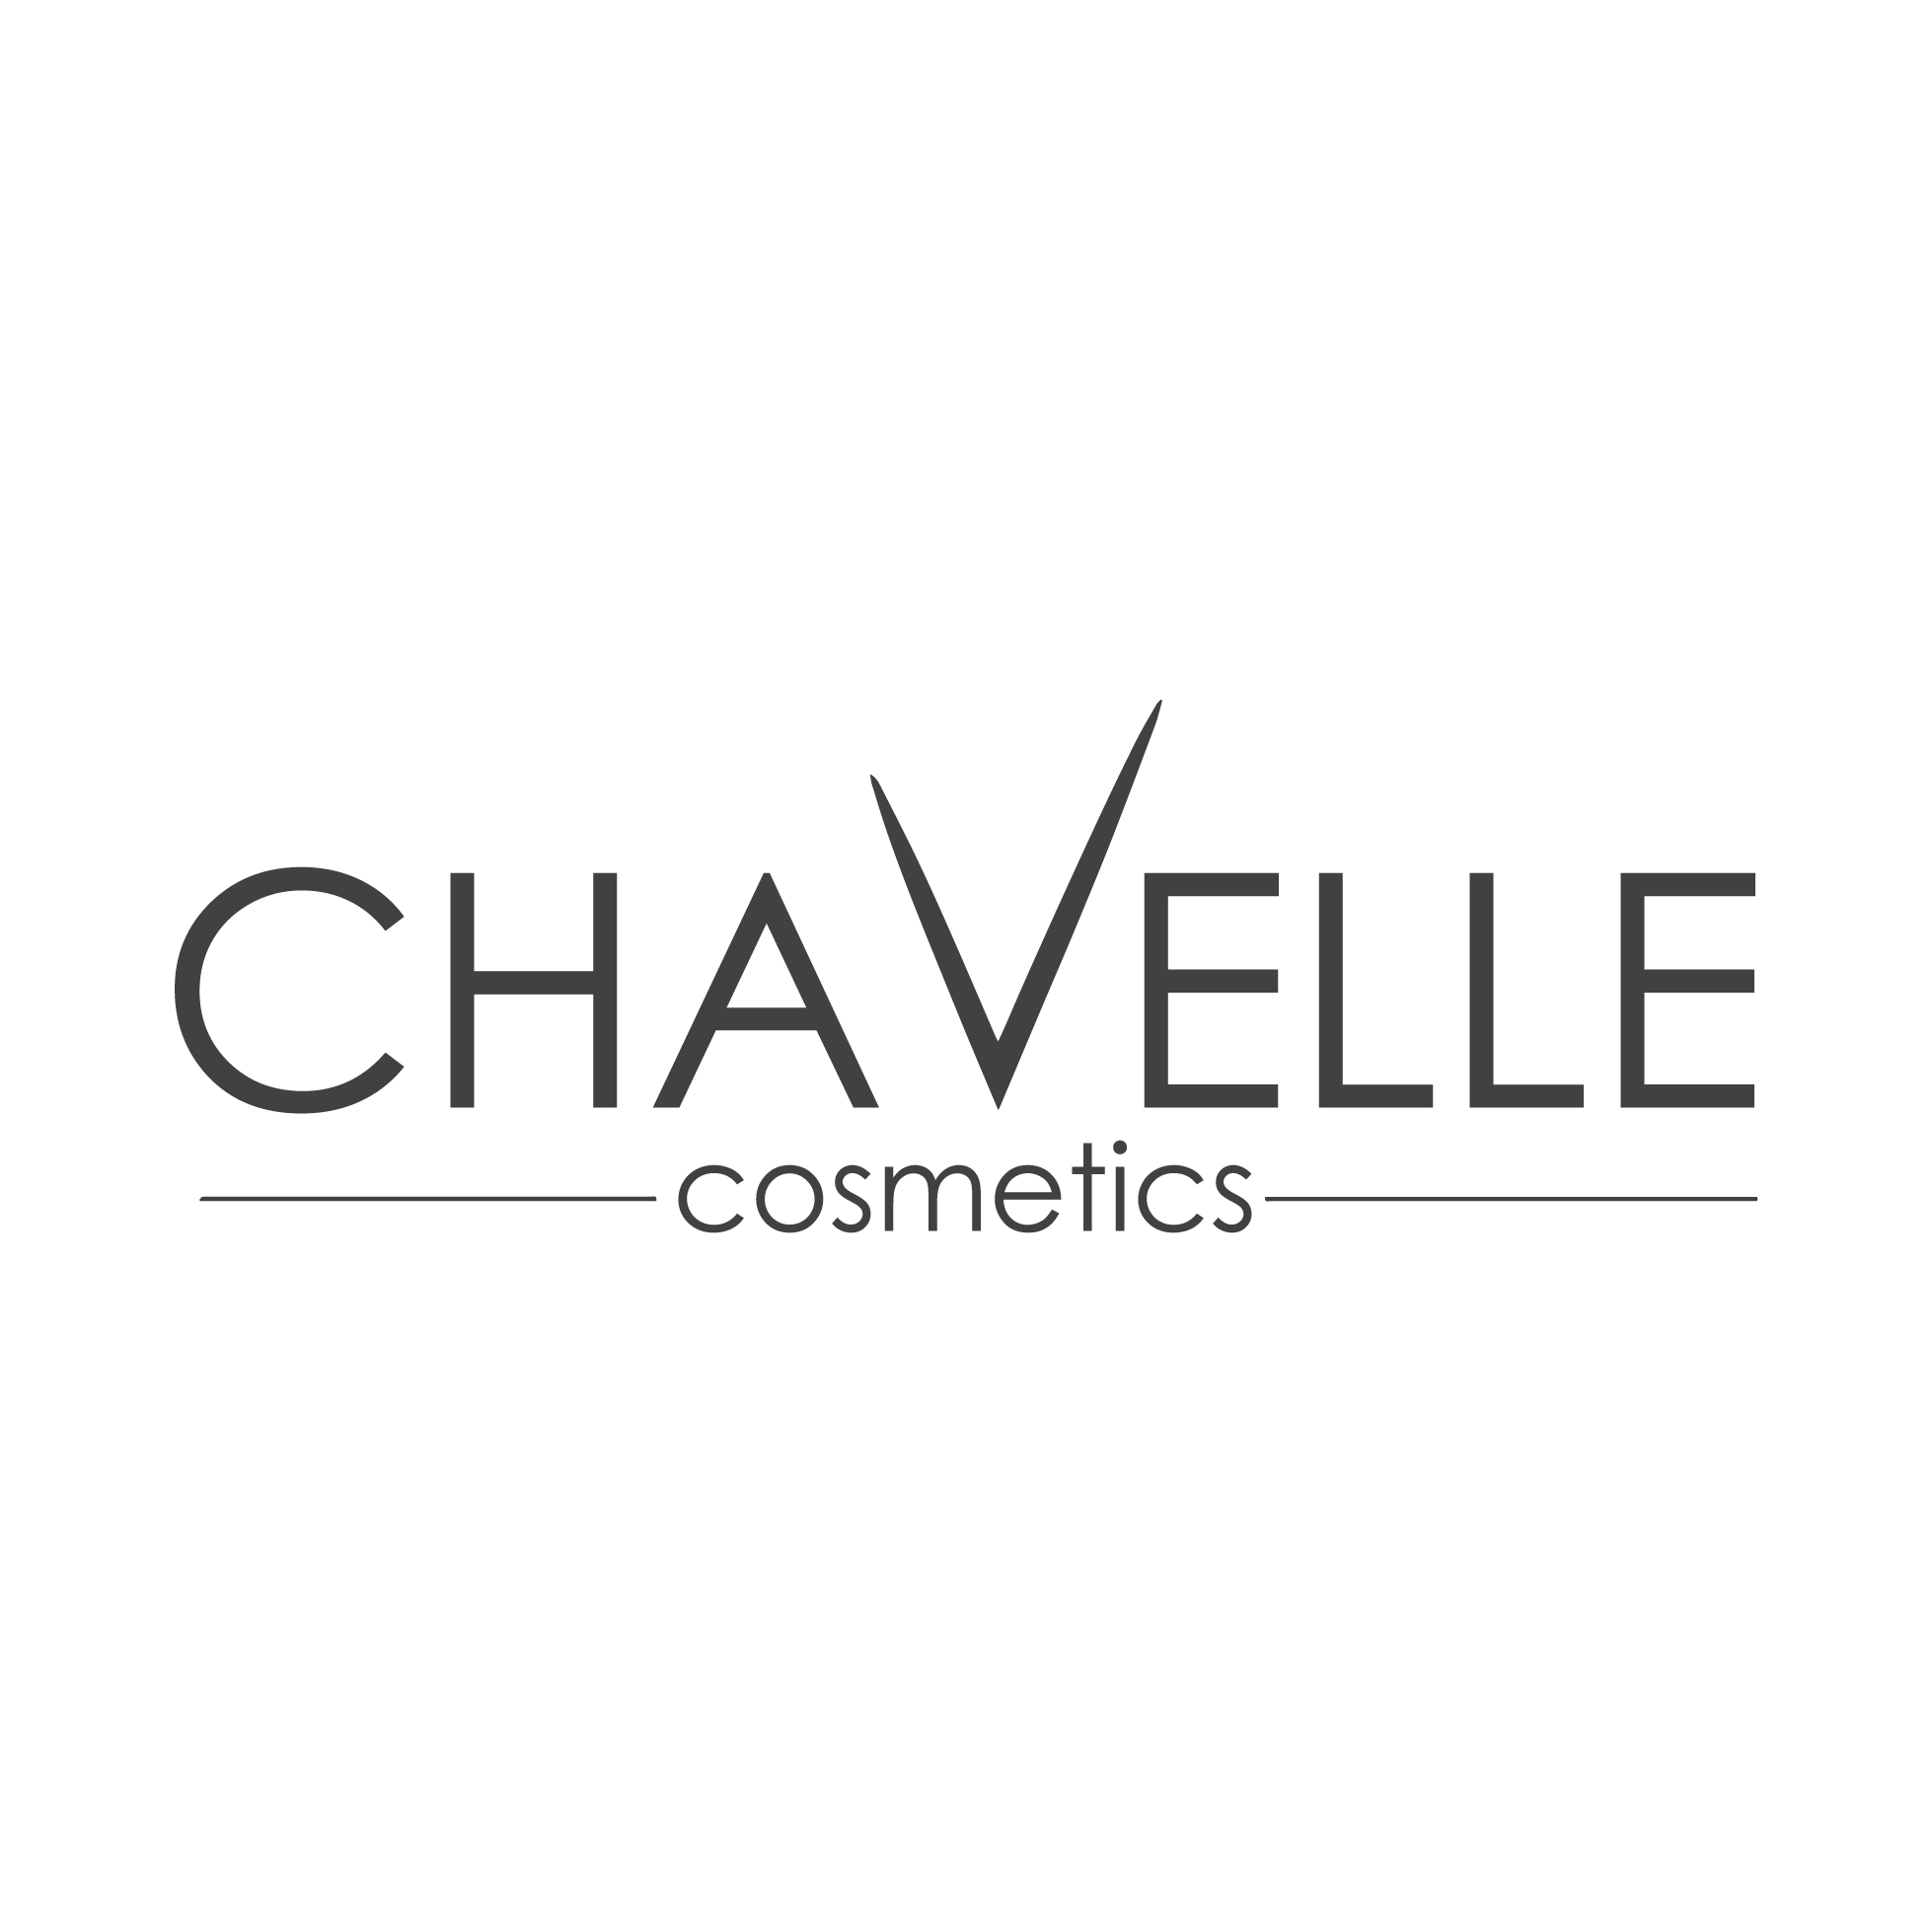 Chavelle Cosmetics